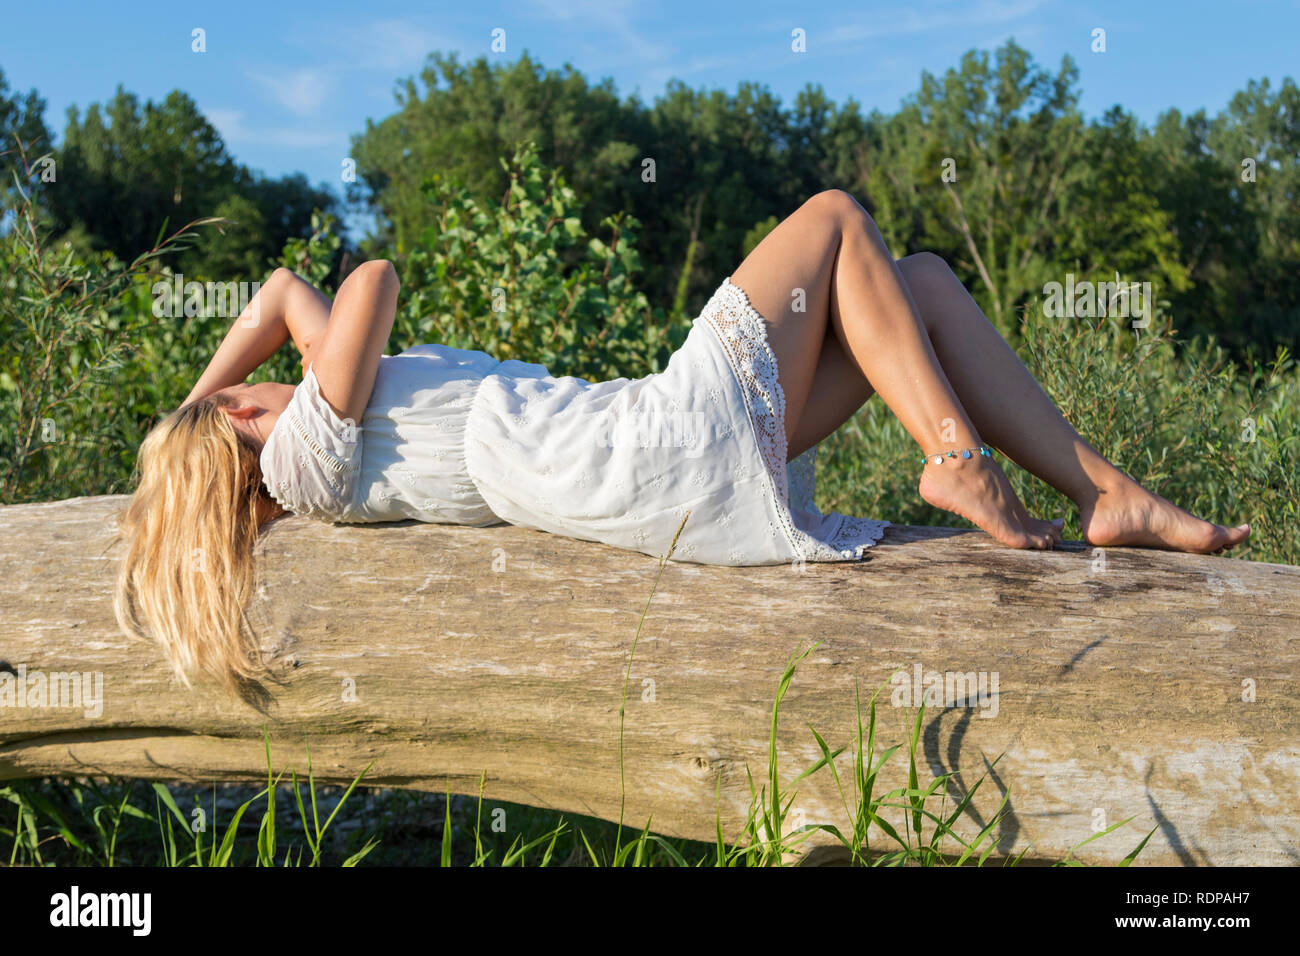 Girl in a short white dress laying on a tree - Stock Image